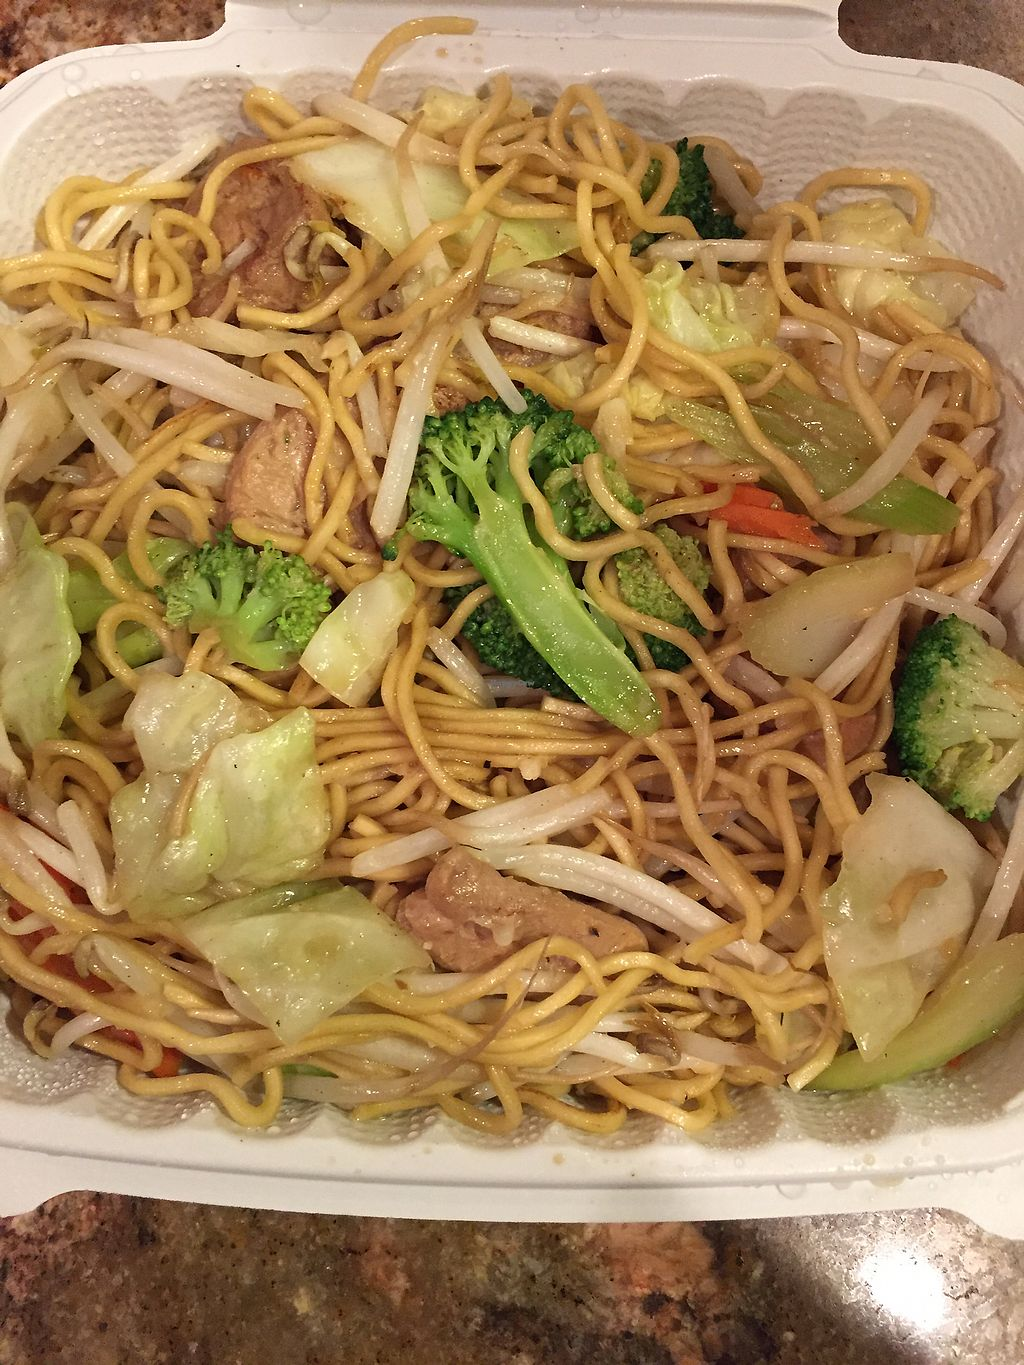 """Photo of Vegan Glory  by <a href=""""/members/profile/R-MV"""">R-MV</a> <br/>Chicken chow mein  <br/> October 9, 2017  - <a href='/contact/abuse/image/5129/313444'>Report</a>"""